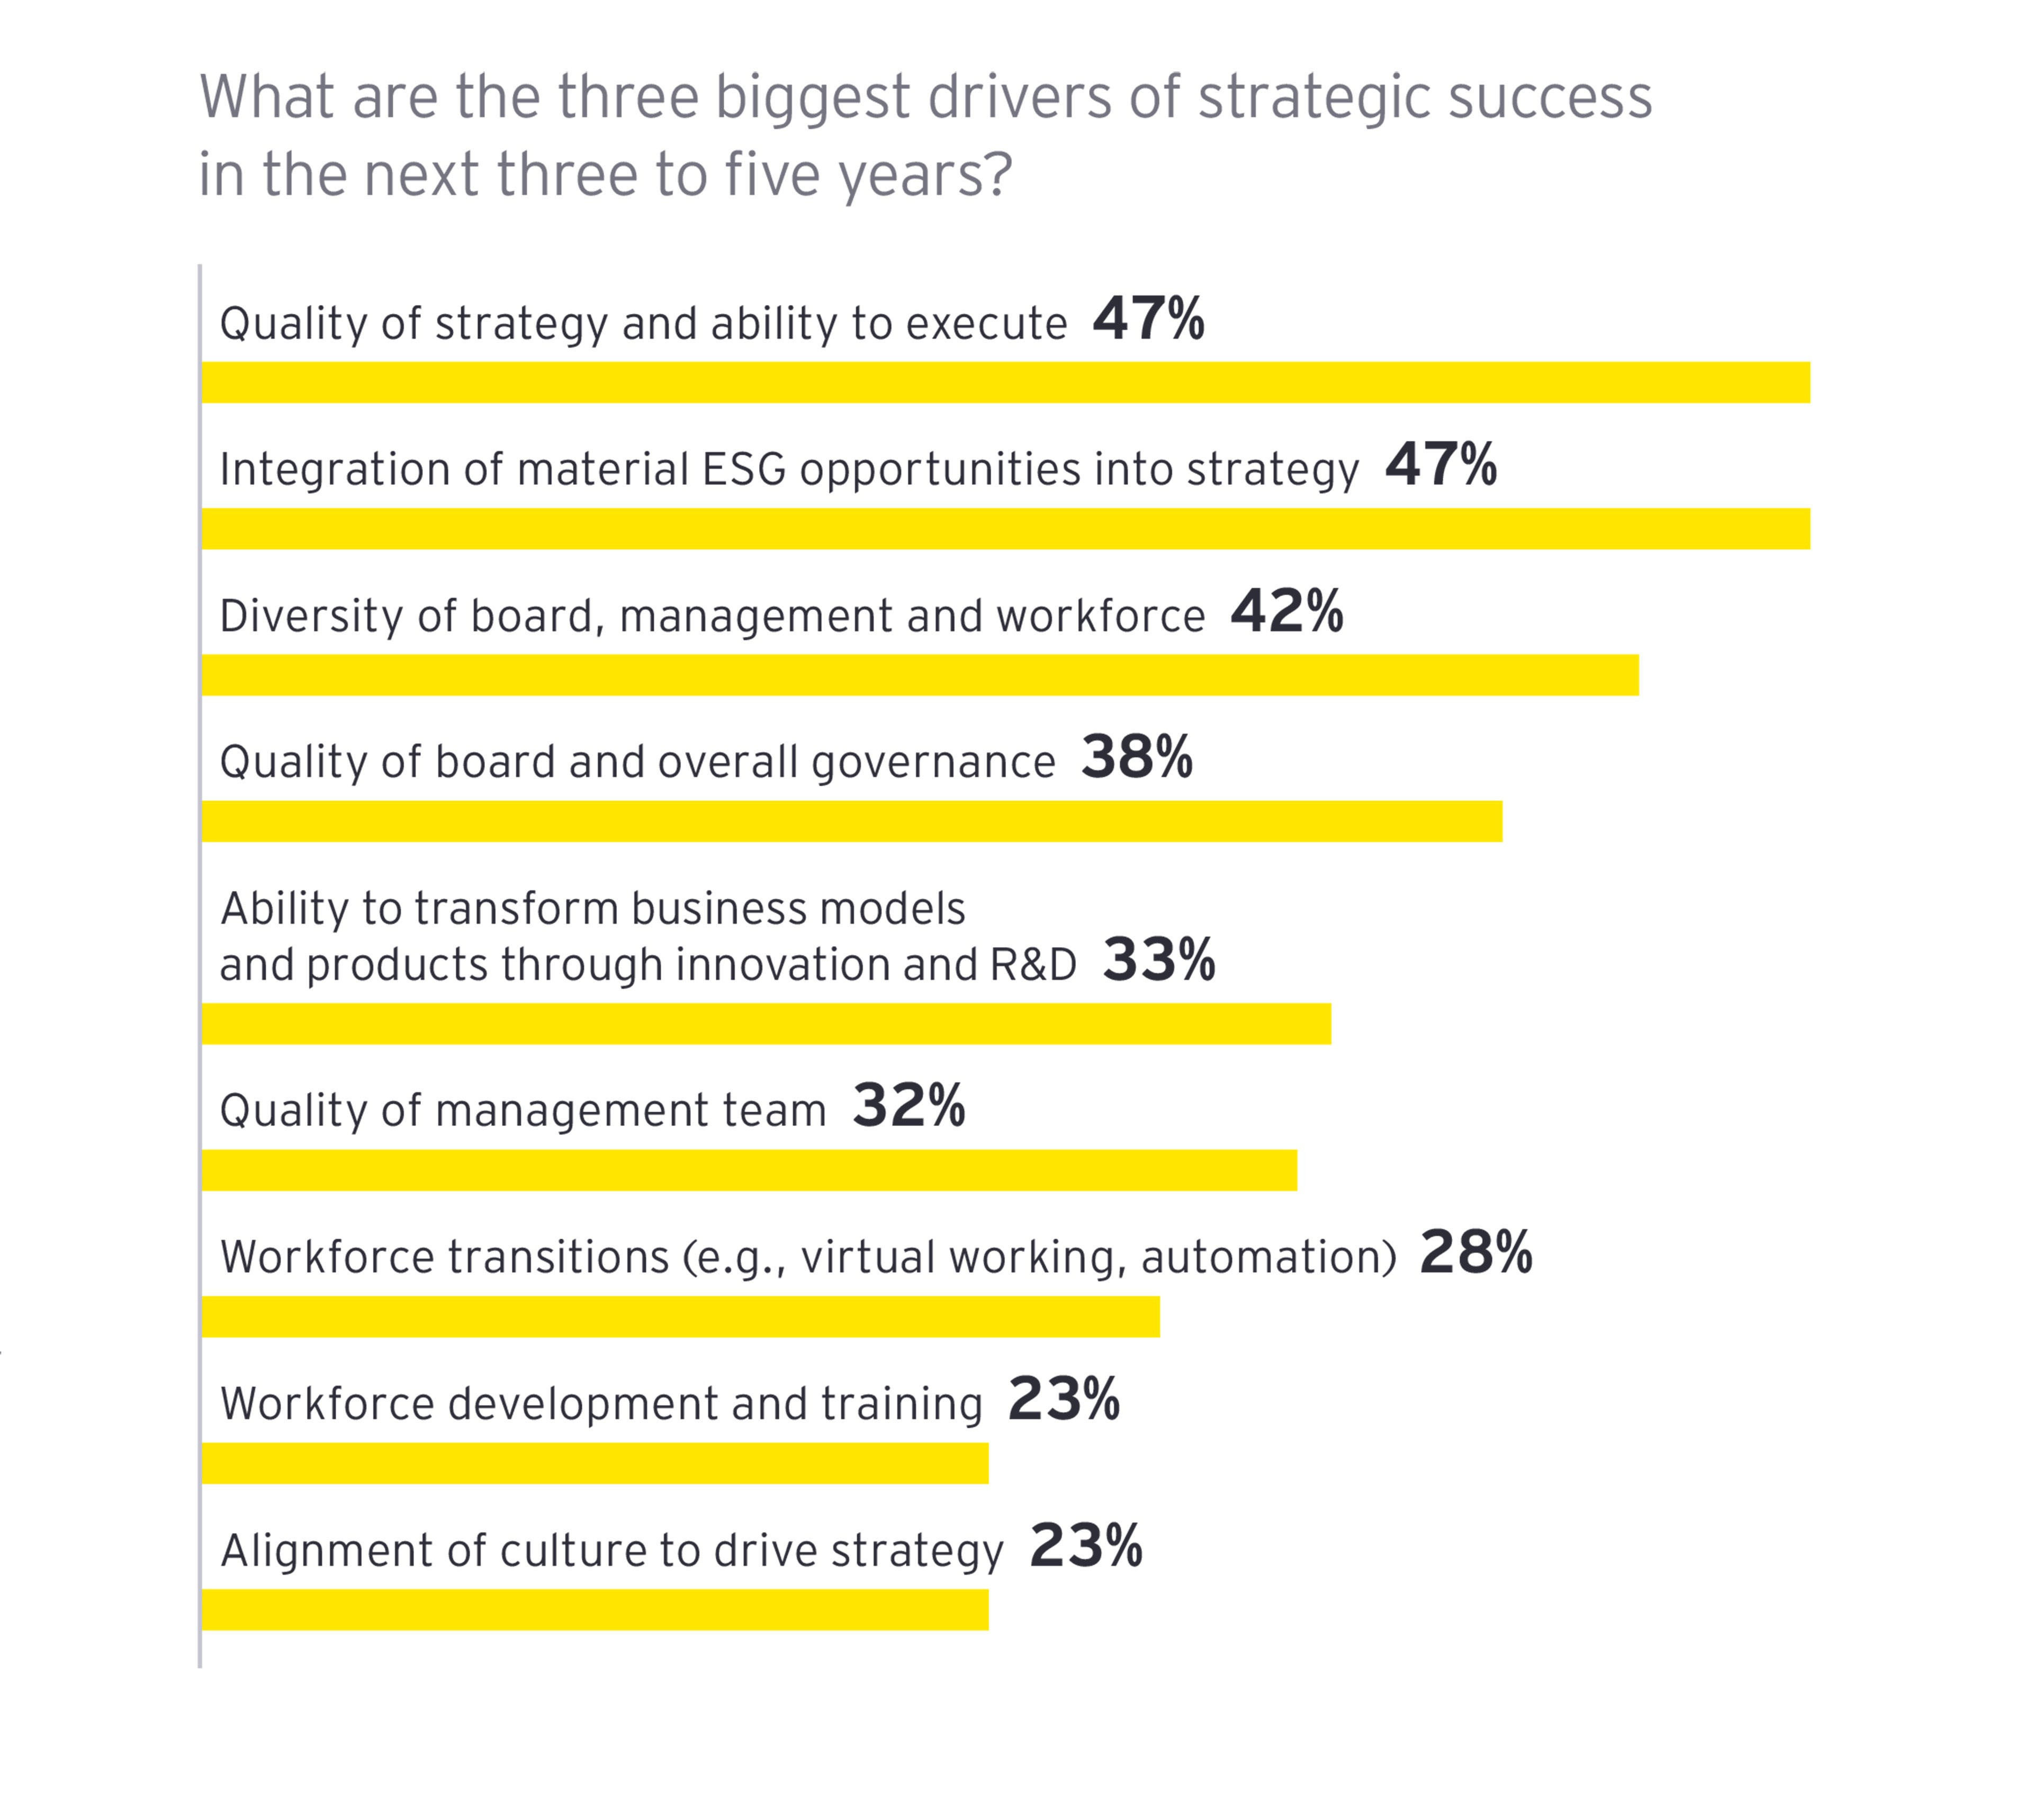 EY - Three biggest drivers of strategic success in the next three to five years